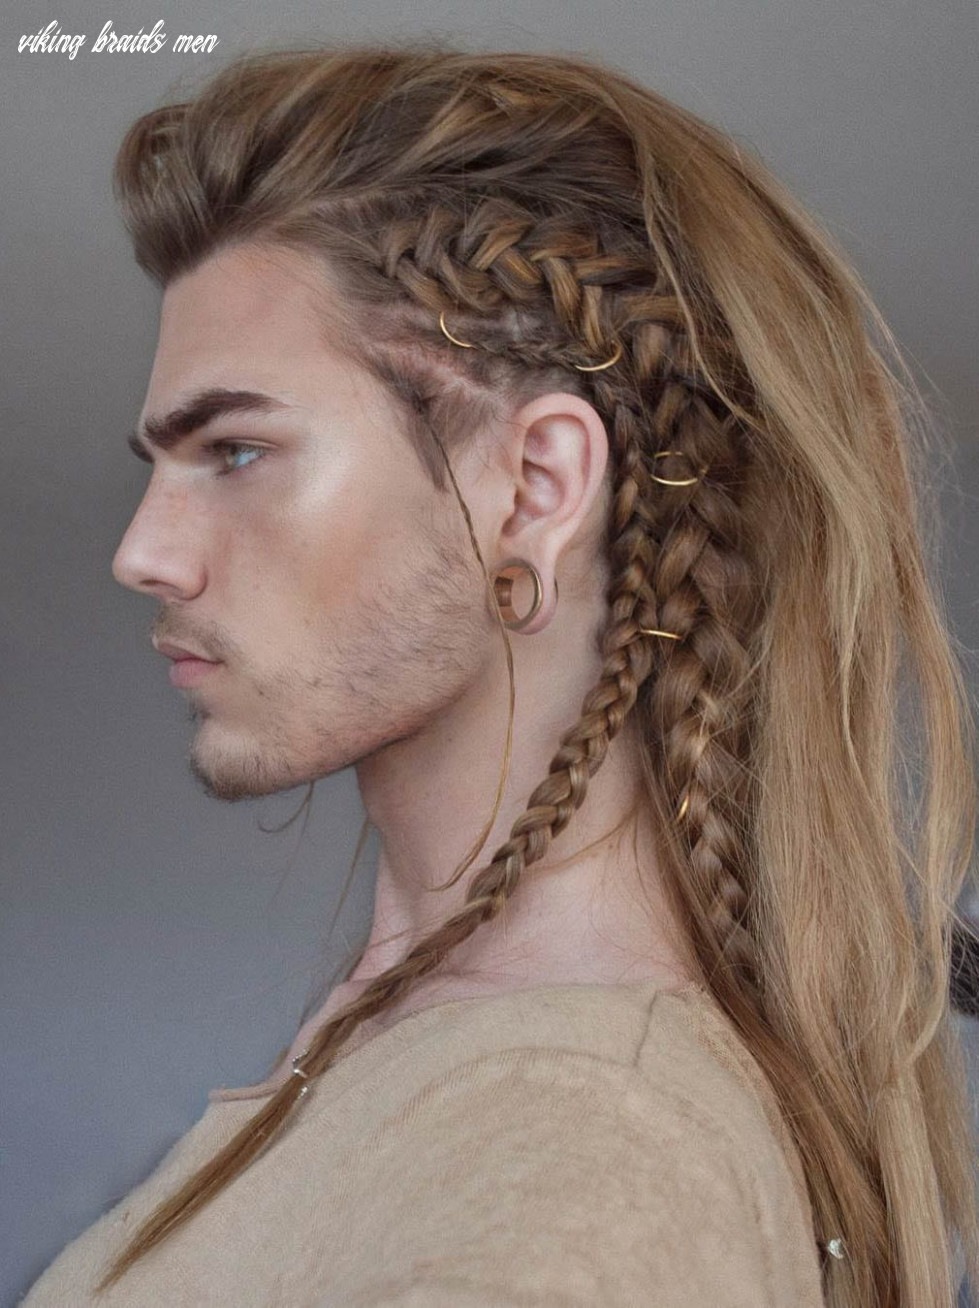 ManBraid Alert: An Easy Guide to Braids For Men